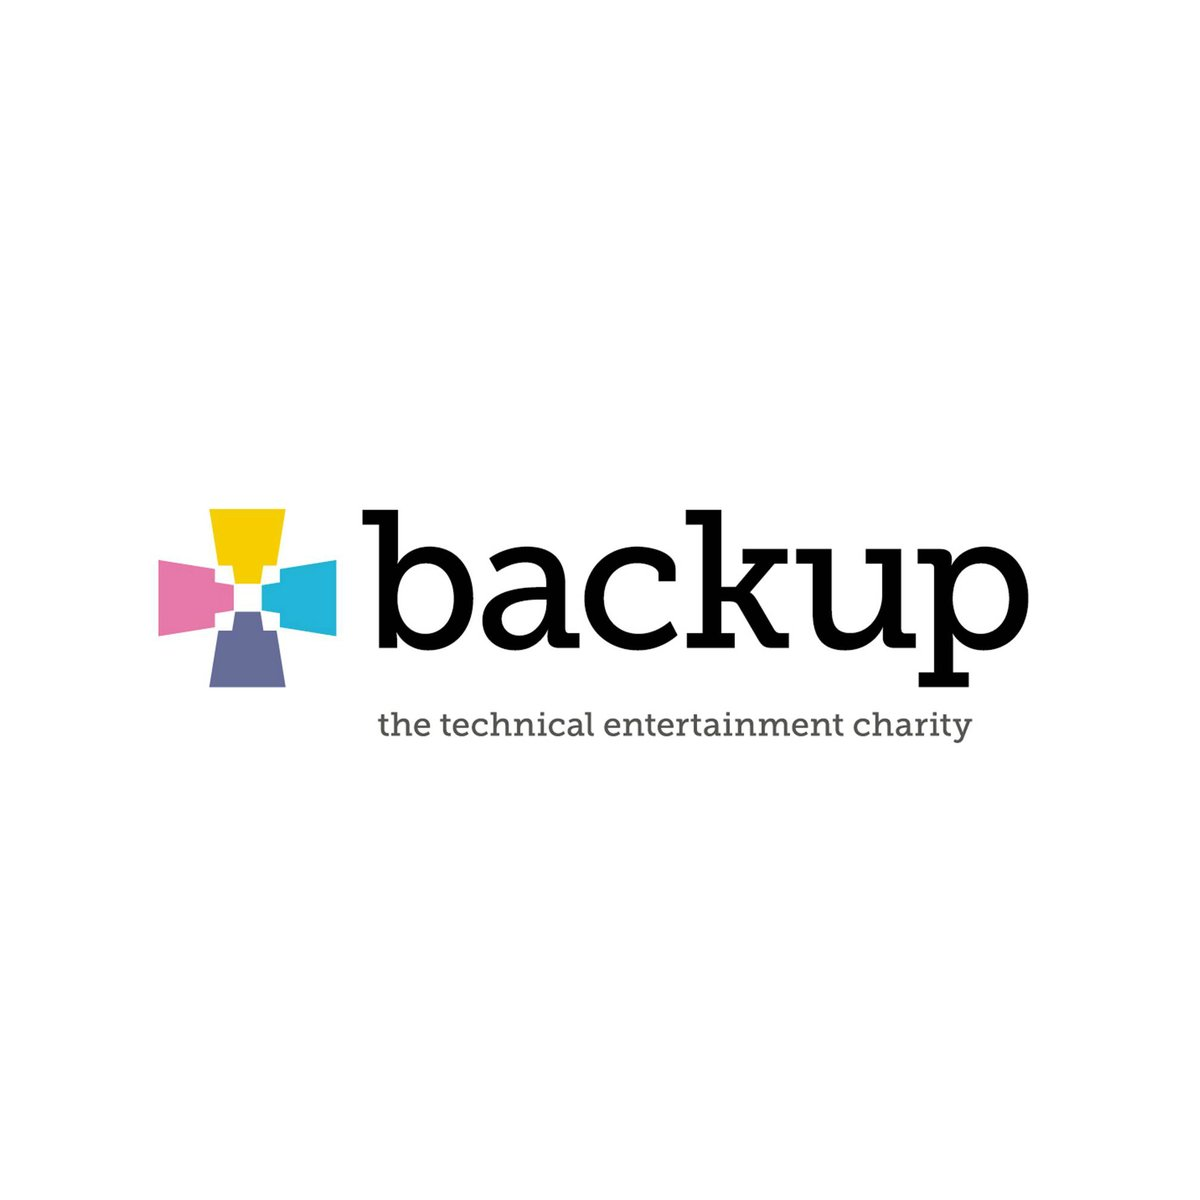 Backup Hardship Fund opens for 2nd Round with a widening of criteria.   Opens Monday 30th November 2020! Full details inc. application opening/closing dates/time & new criteria:    #BackupTech #BackupUK #WeMakeEvents #WeNeedCrew #LetTheMusicPlay